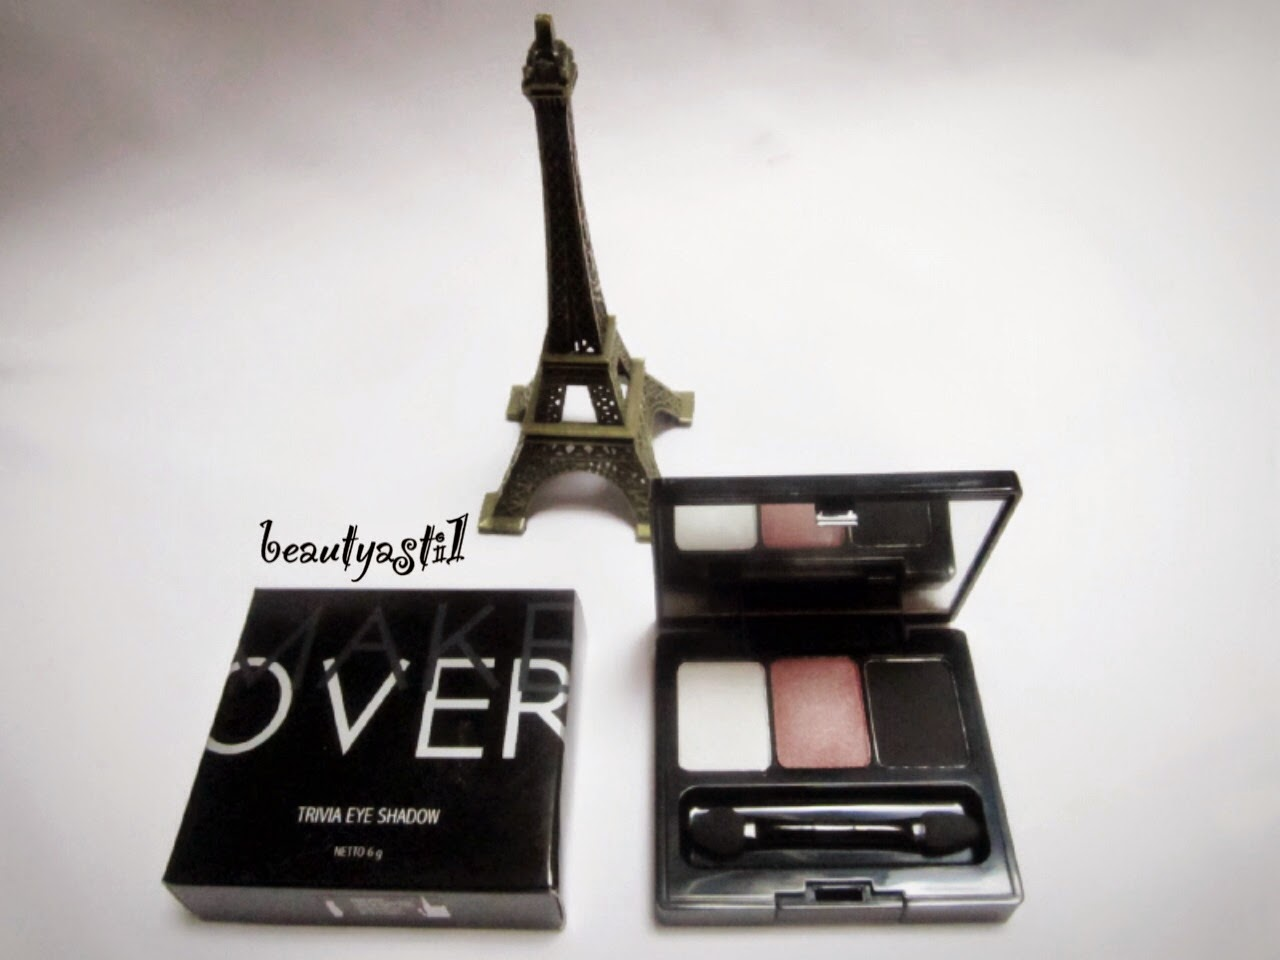 make-over-love-at-first-sight-trivia-eyeshadow-review.jpg